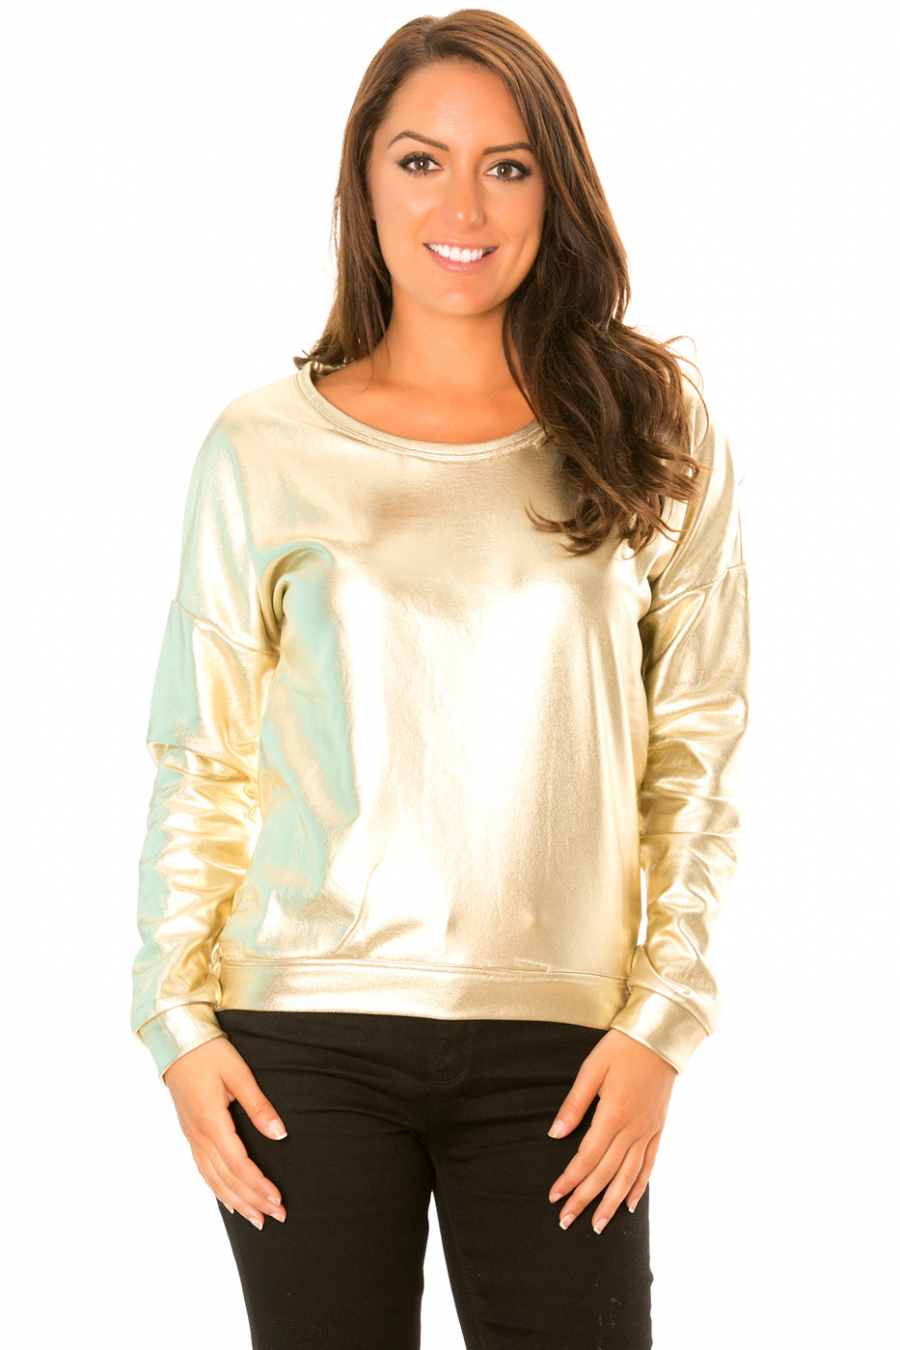 Long-sleeved sweater in shiny retro style. WJ-3871